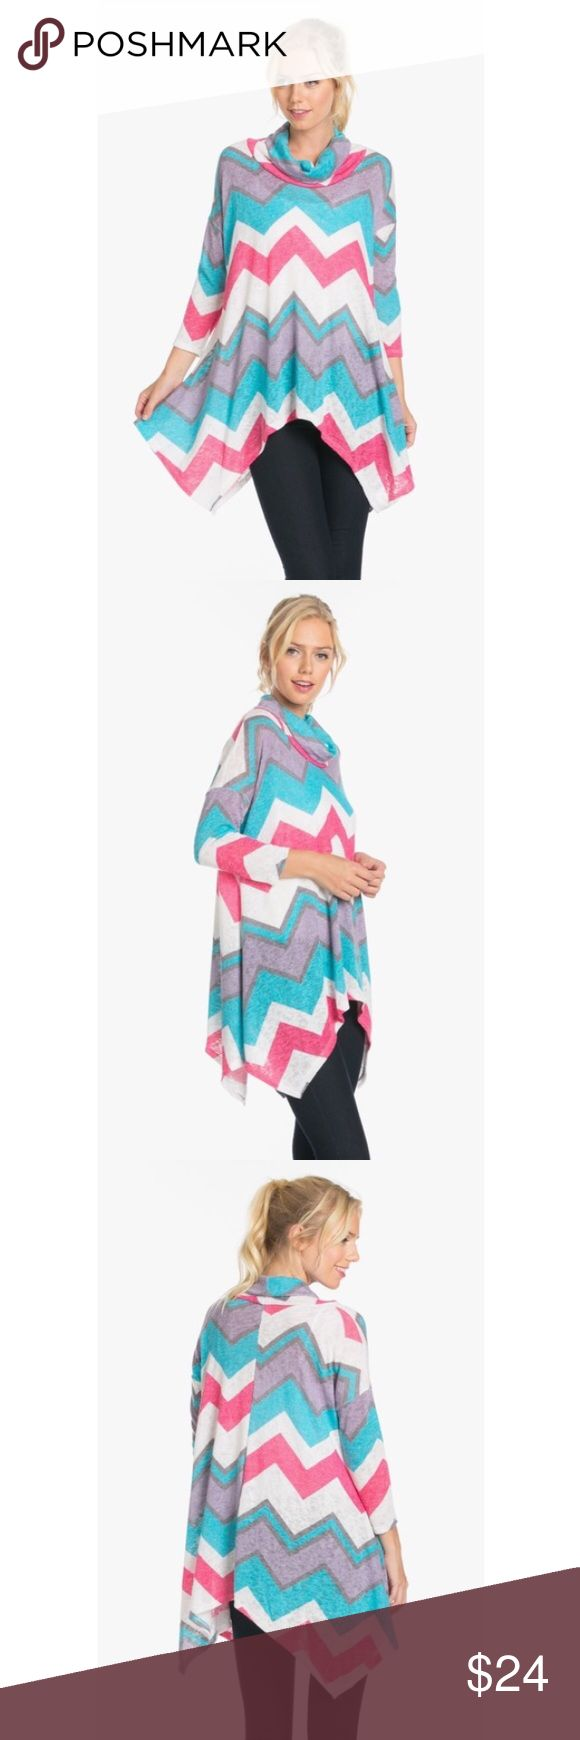 🎉TUESDAY SPECIAL🎉 Chevron Turtle Neck Knit Top Chevron Turtle Neck Knit Top.                                 Fuchsia/Jade.                                                              95% Polyester 5% Spandex.                                    Made In The USA The Blossom Apparel Tops